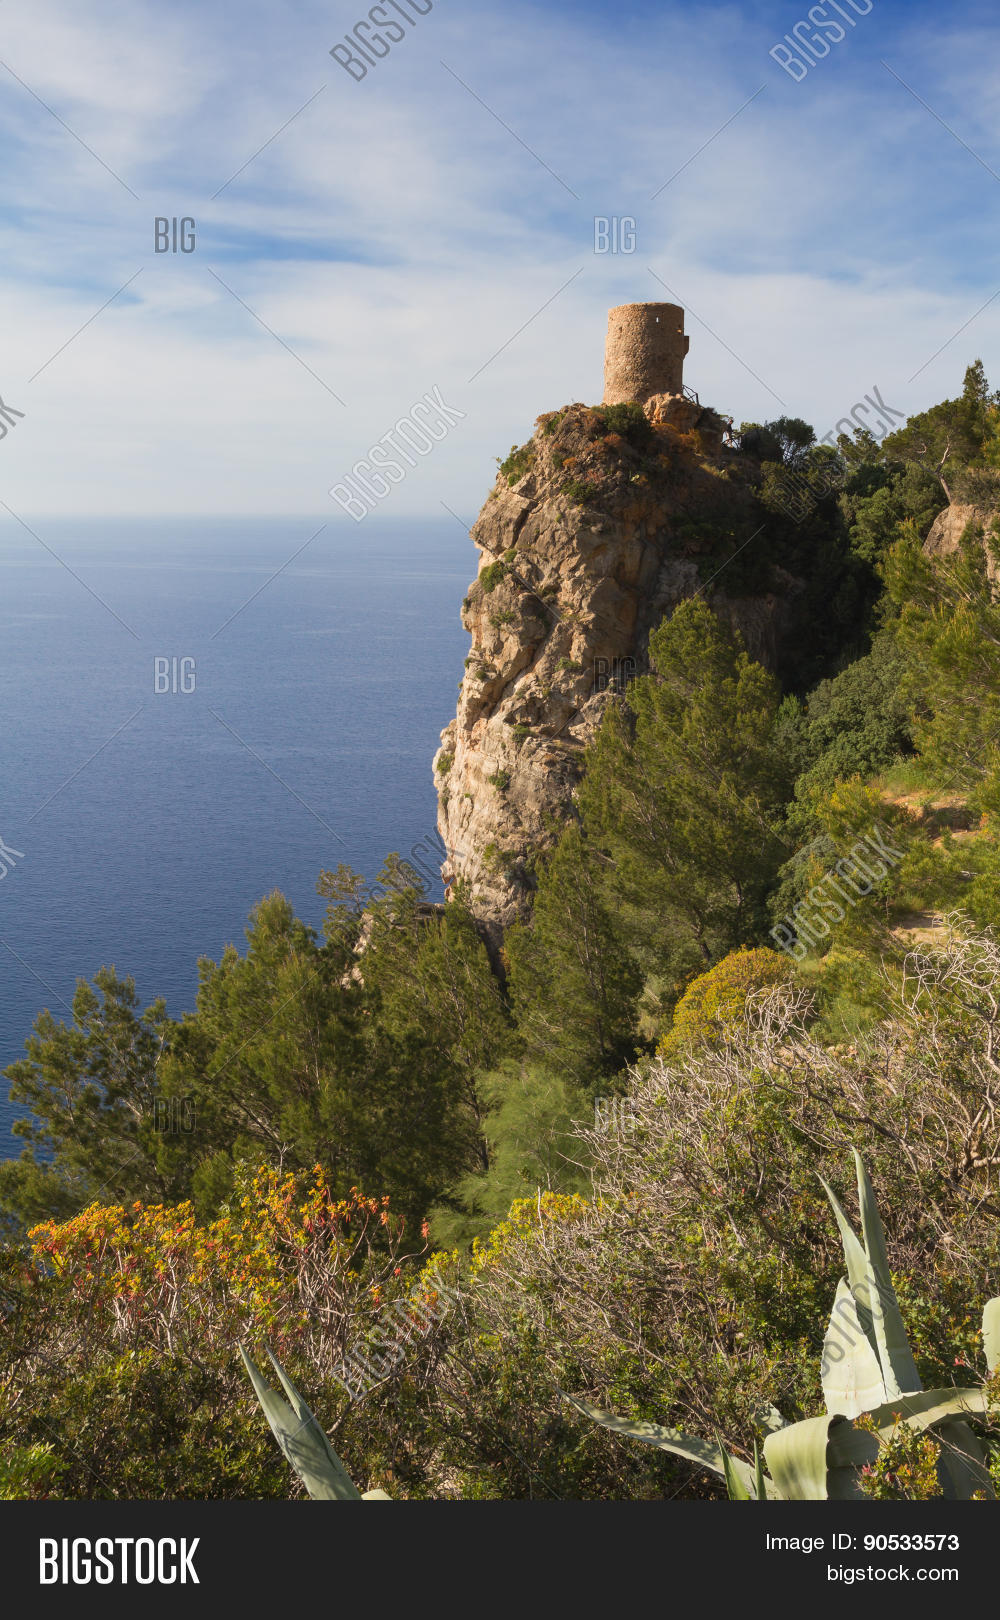 animes,baleares,banyalbufar,de,landmark,landscape,lookout,majorca,mallorca,mediterranean,nature,priate,sea,serra,ses,spain,torre,tower,tramuntana,verger,viewpoint